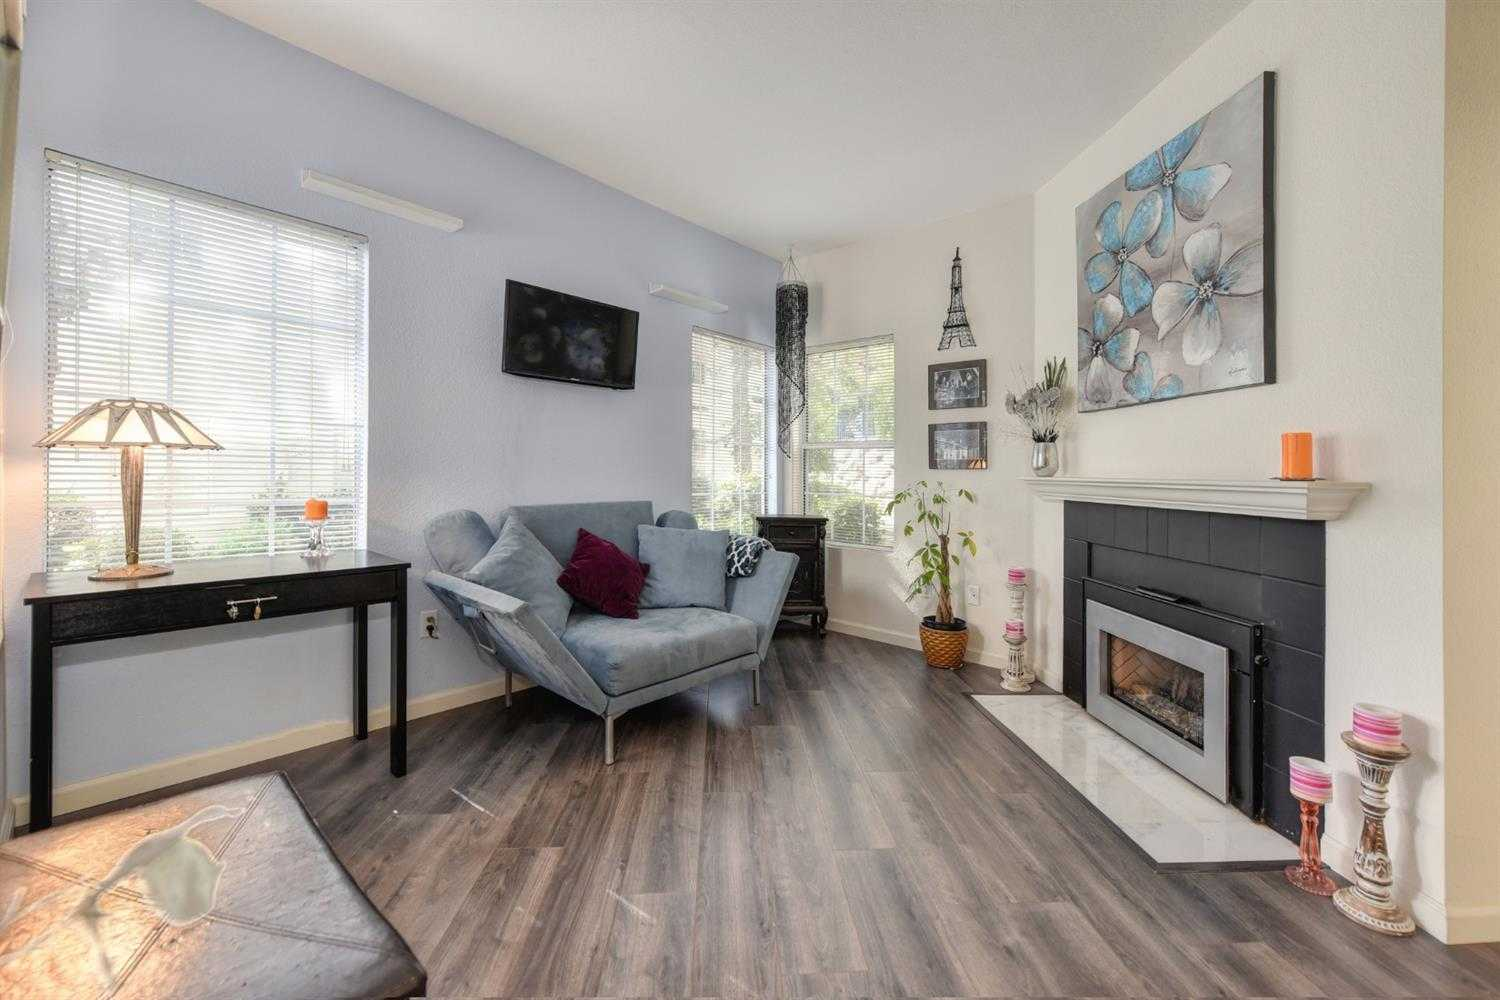 $215,000 - 1Br/1Ba -  for Sale in Pacific Sunset, Rocklin